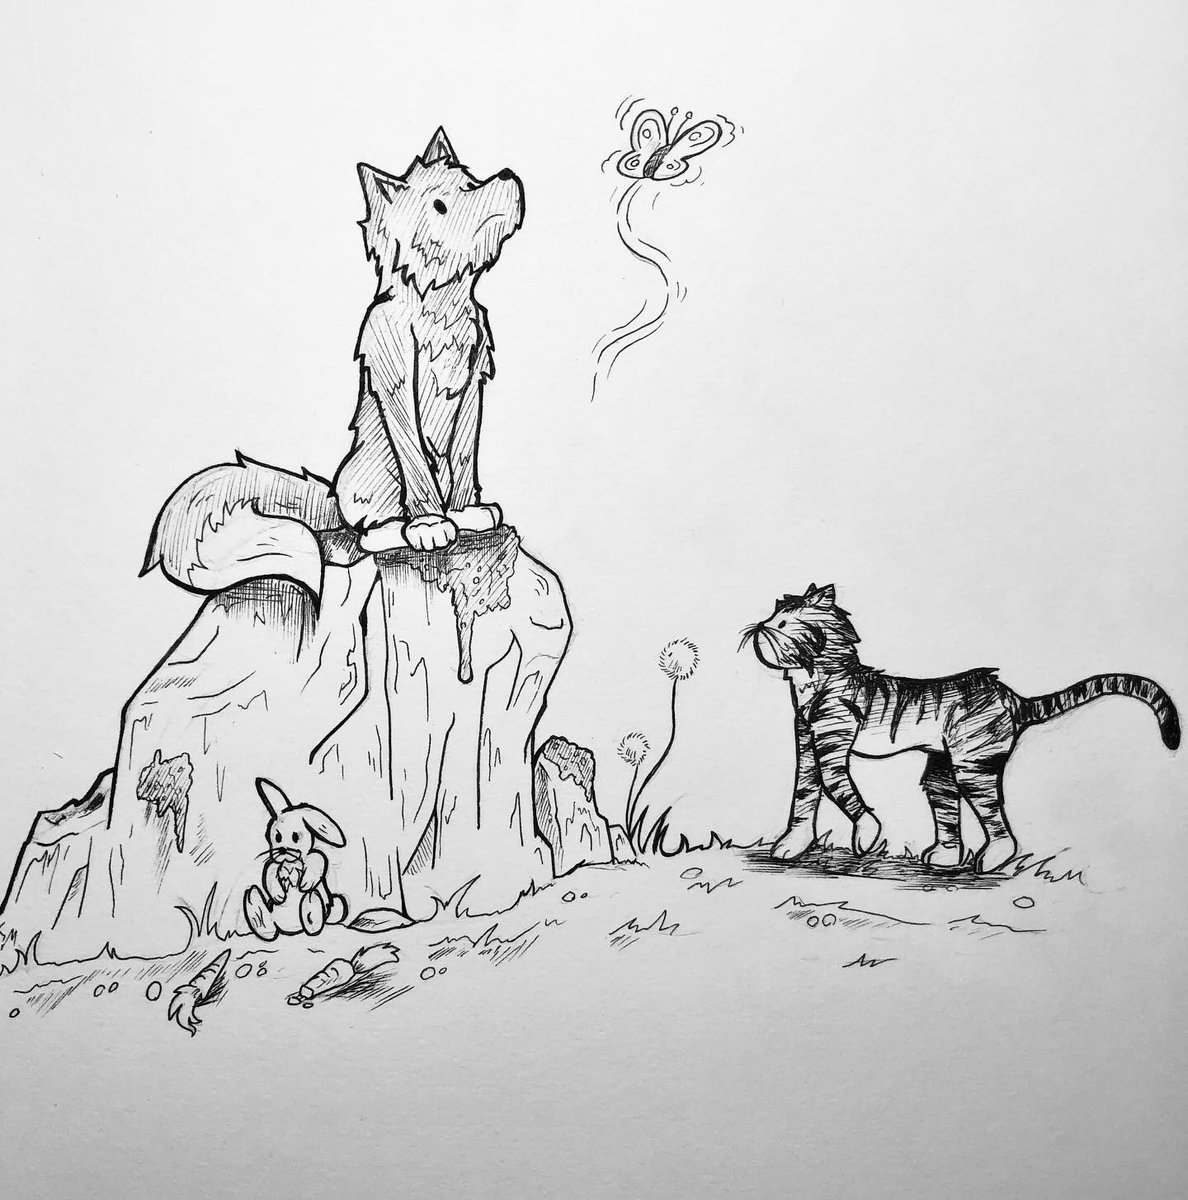 ~ A Quiet Day ~  #animestyle #animal #animaldrawings #cat #dog #bunny #drawing #inkdrawing #sketching #catdrawing #dogdrawing #comic #comicstyle #artstyle #cutedogs #cutecatspic.twitter.com/LxQUmkZihs